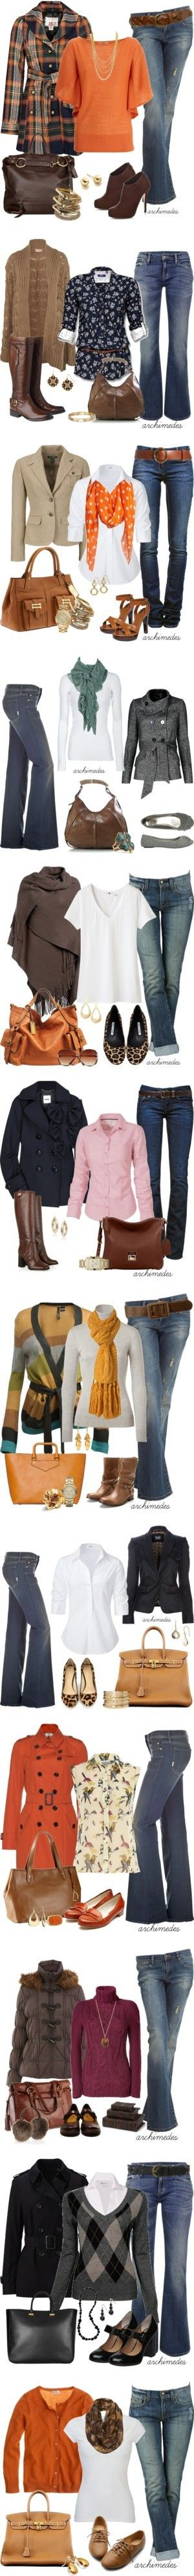 Cute fall outfits...love the colors!!! So excited for fall!!